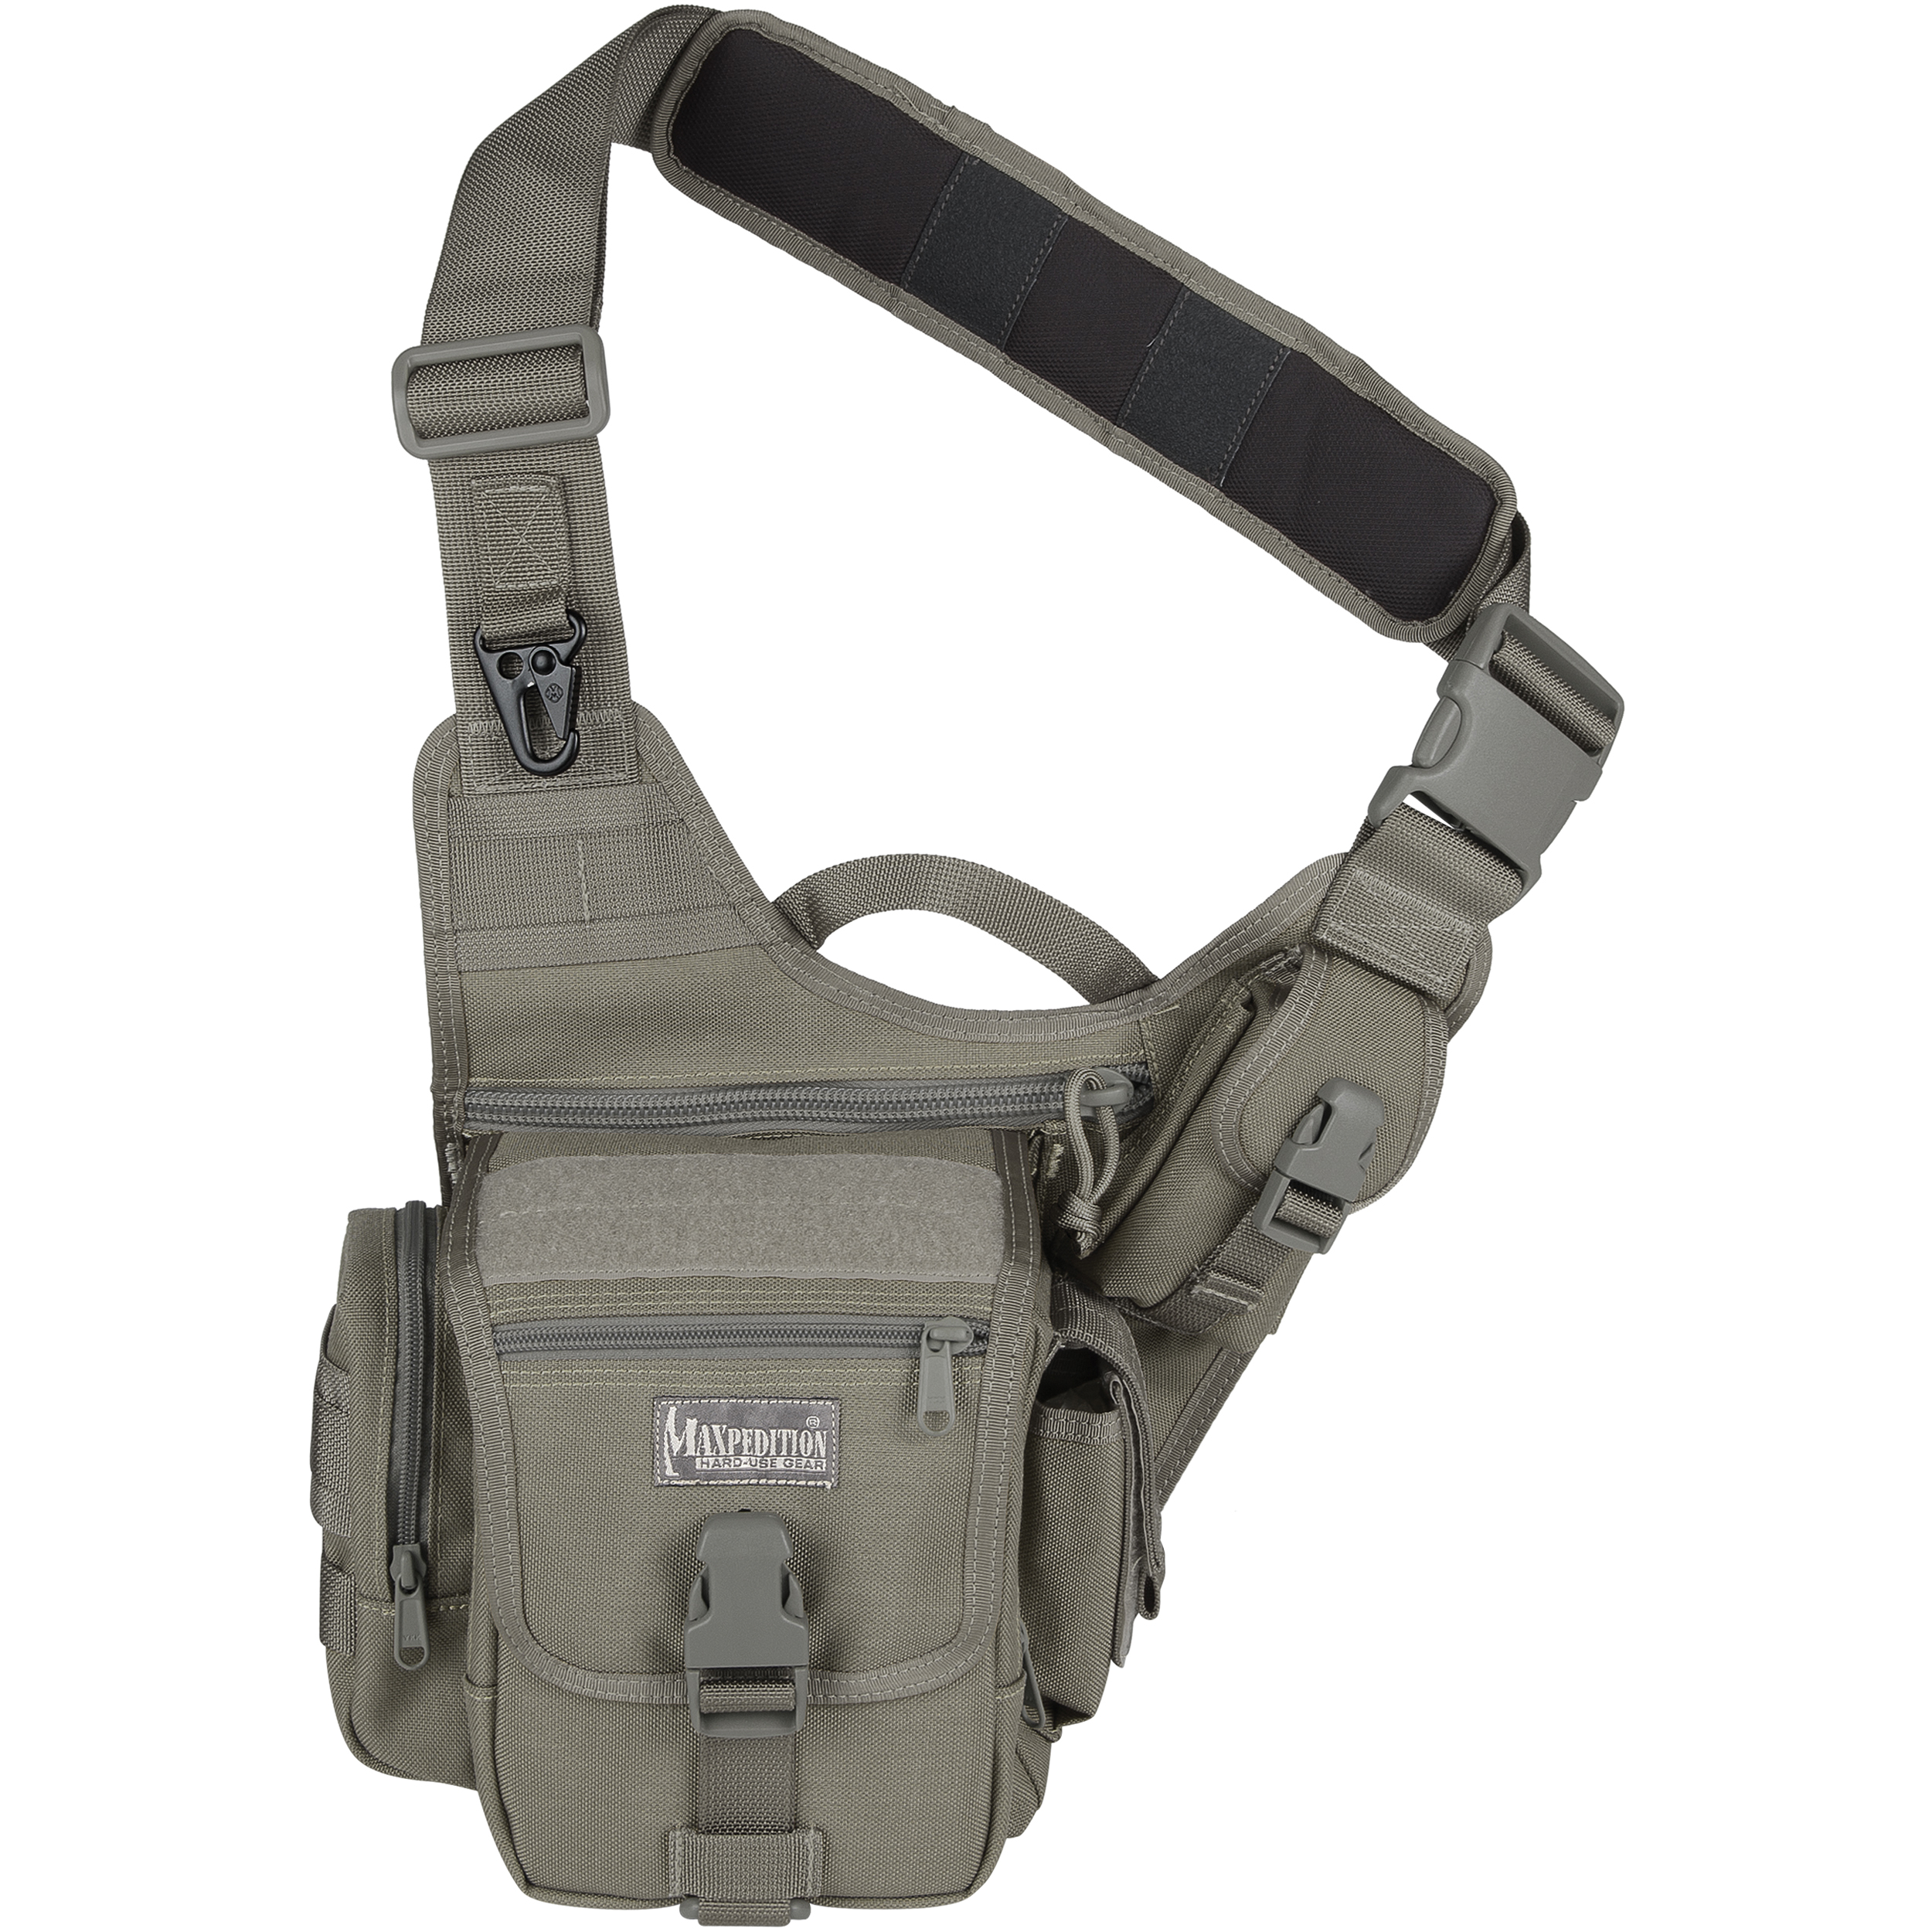 Foliage Green Concealed Carry Waist Pack